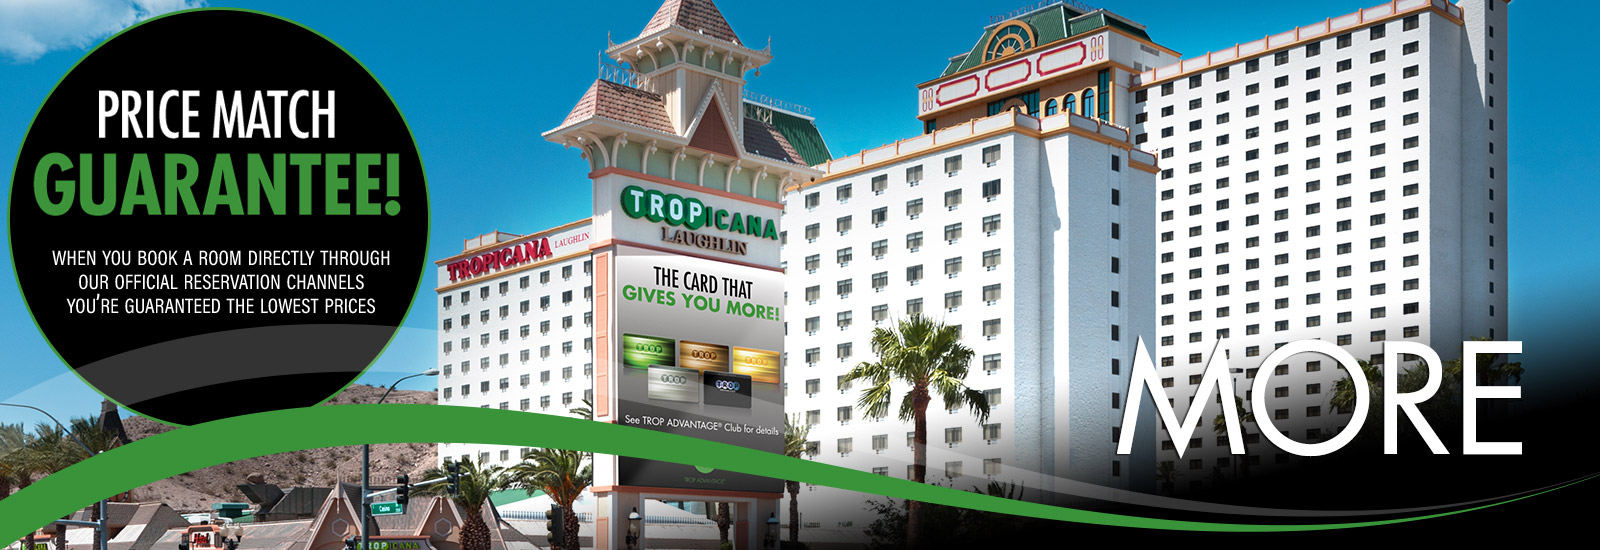 Daylight Photo of Tropicana Laughlin Casino Property